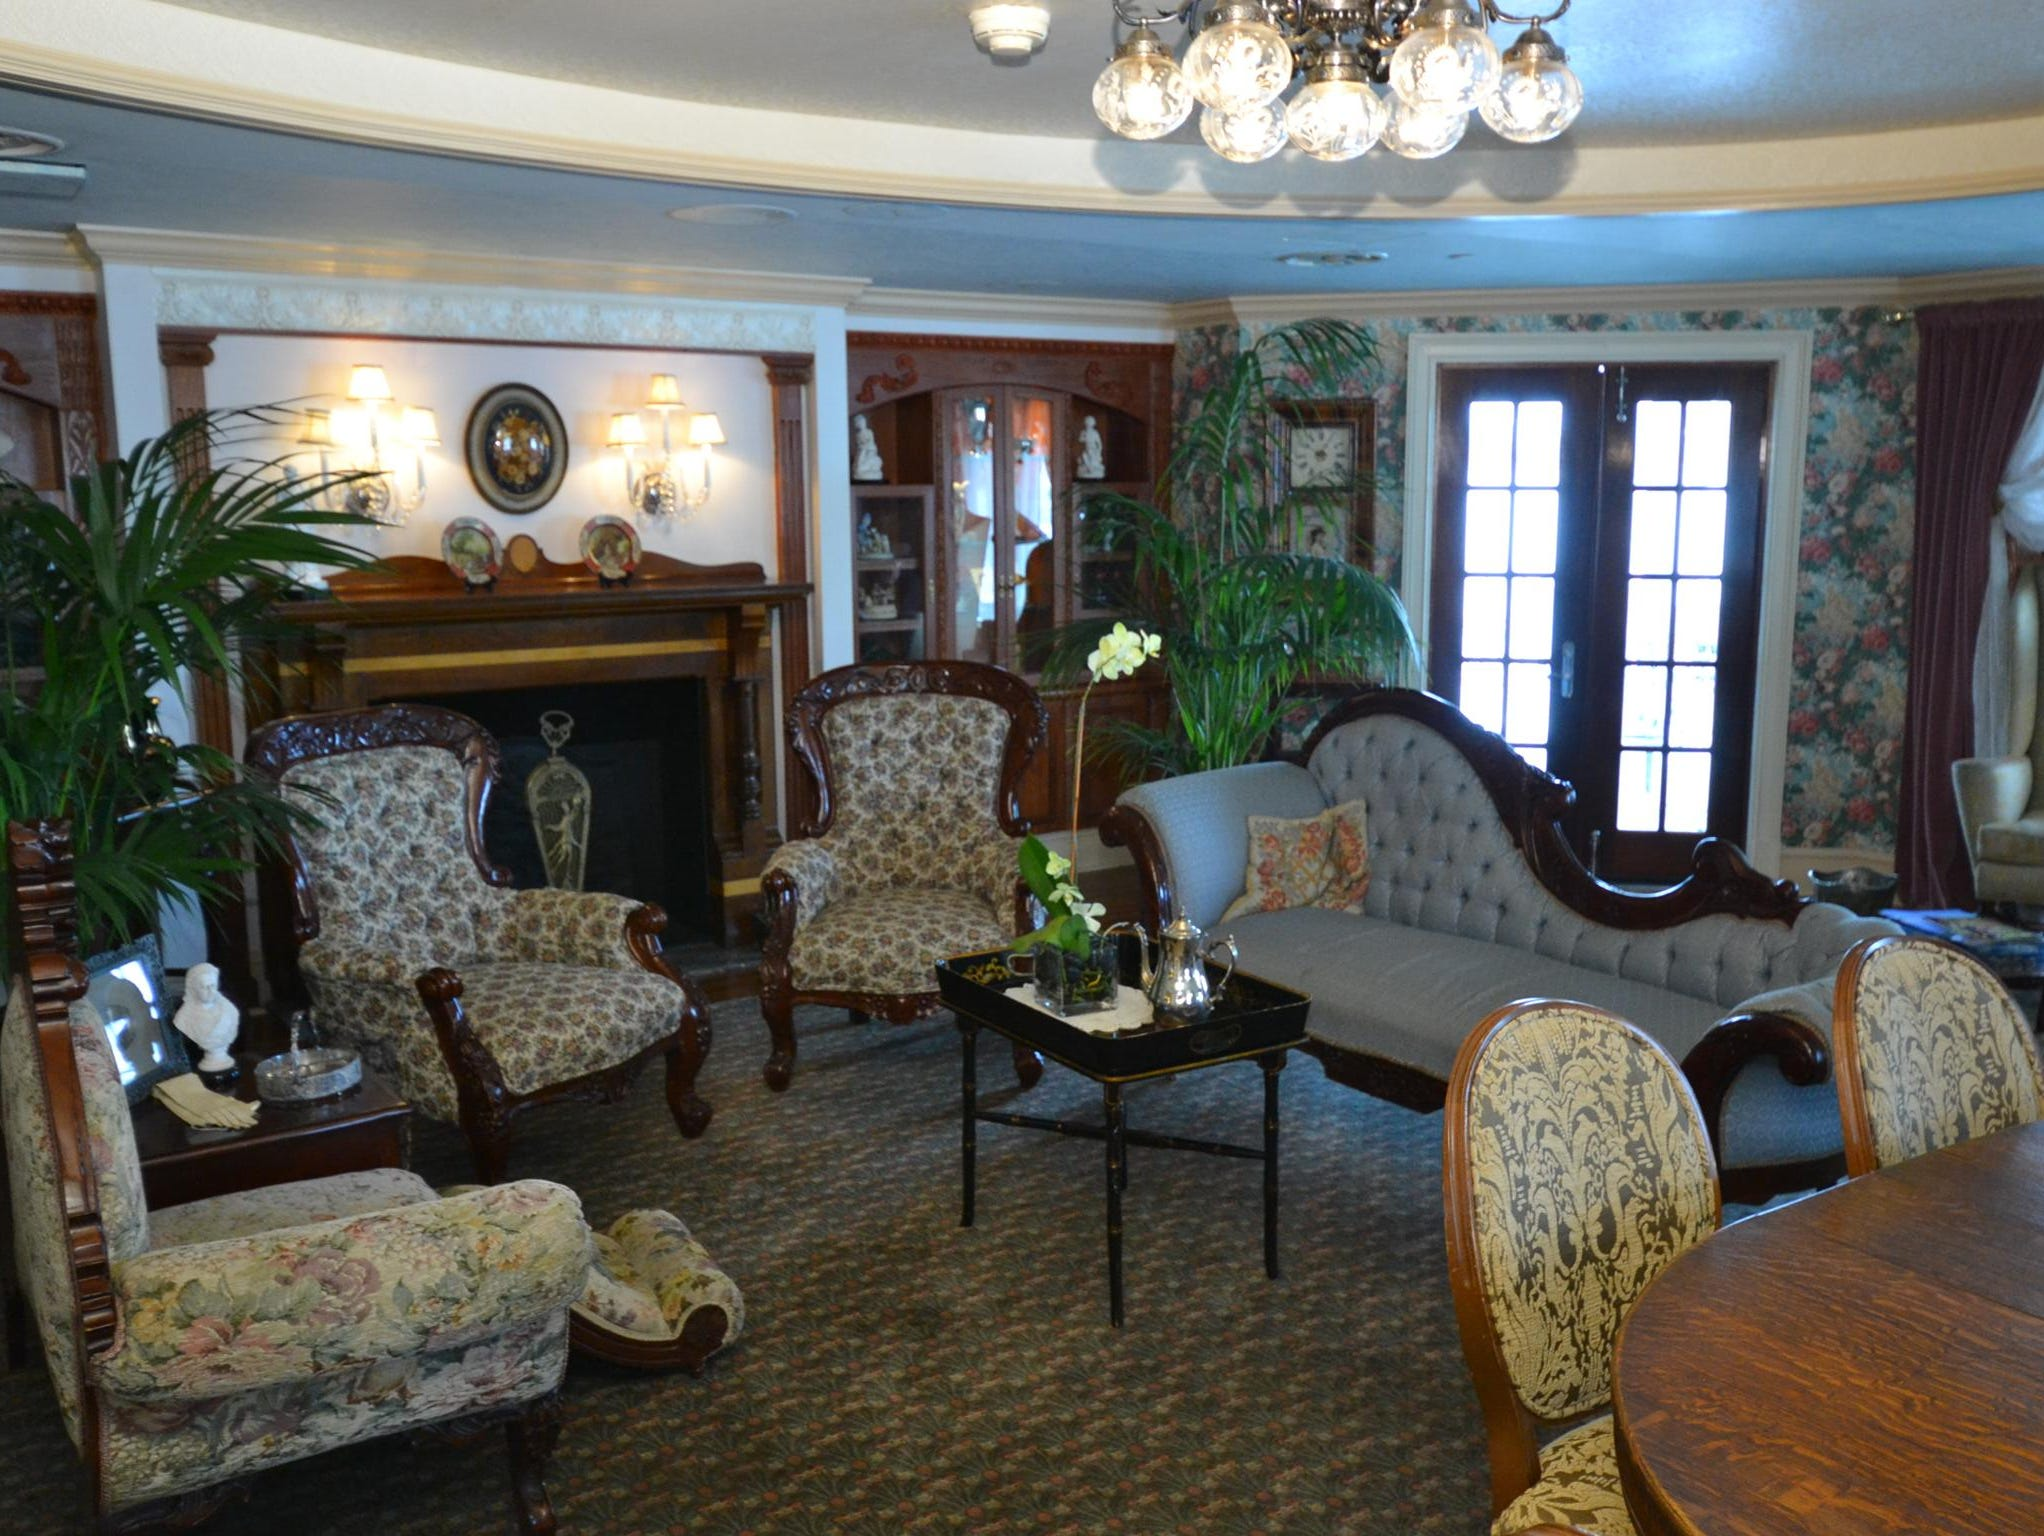 Located across from the Gentleman's Card Room is the Ladies Parlor.